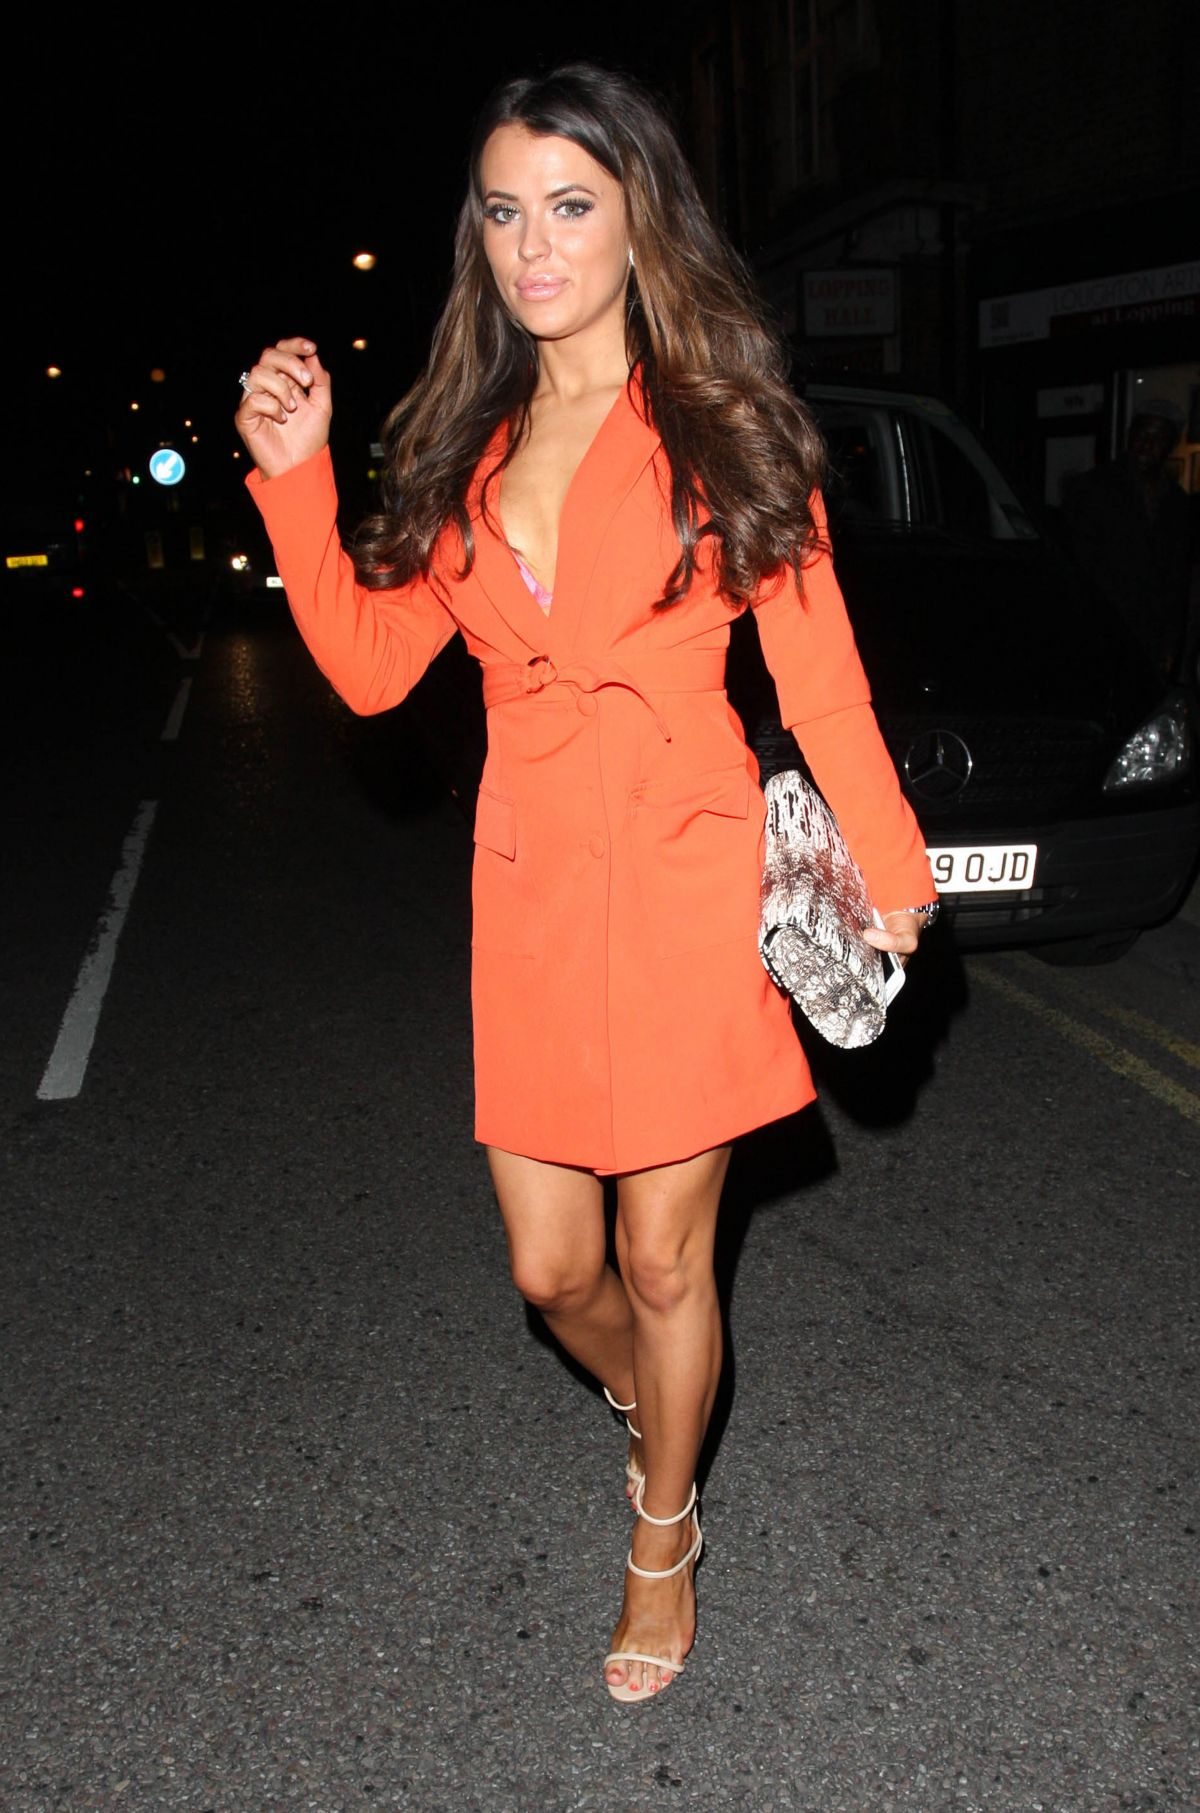 NANCY-MAY TURNER at Luxe Nightclub in Essex 06/18/2016